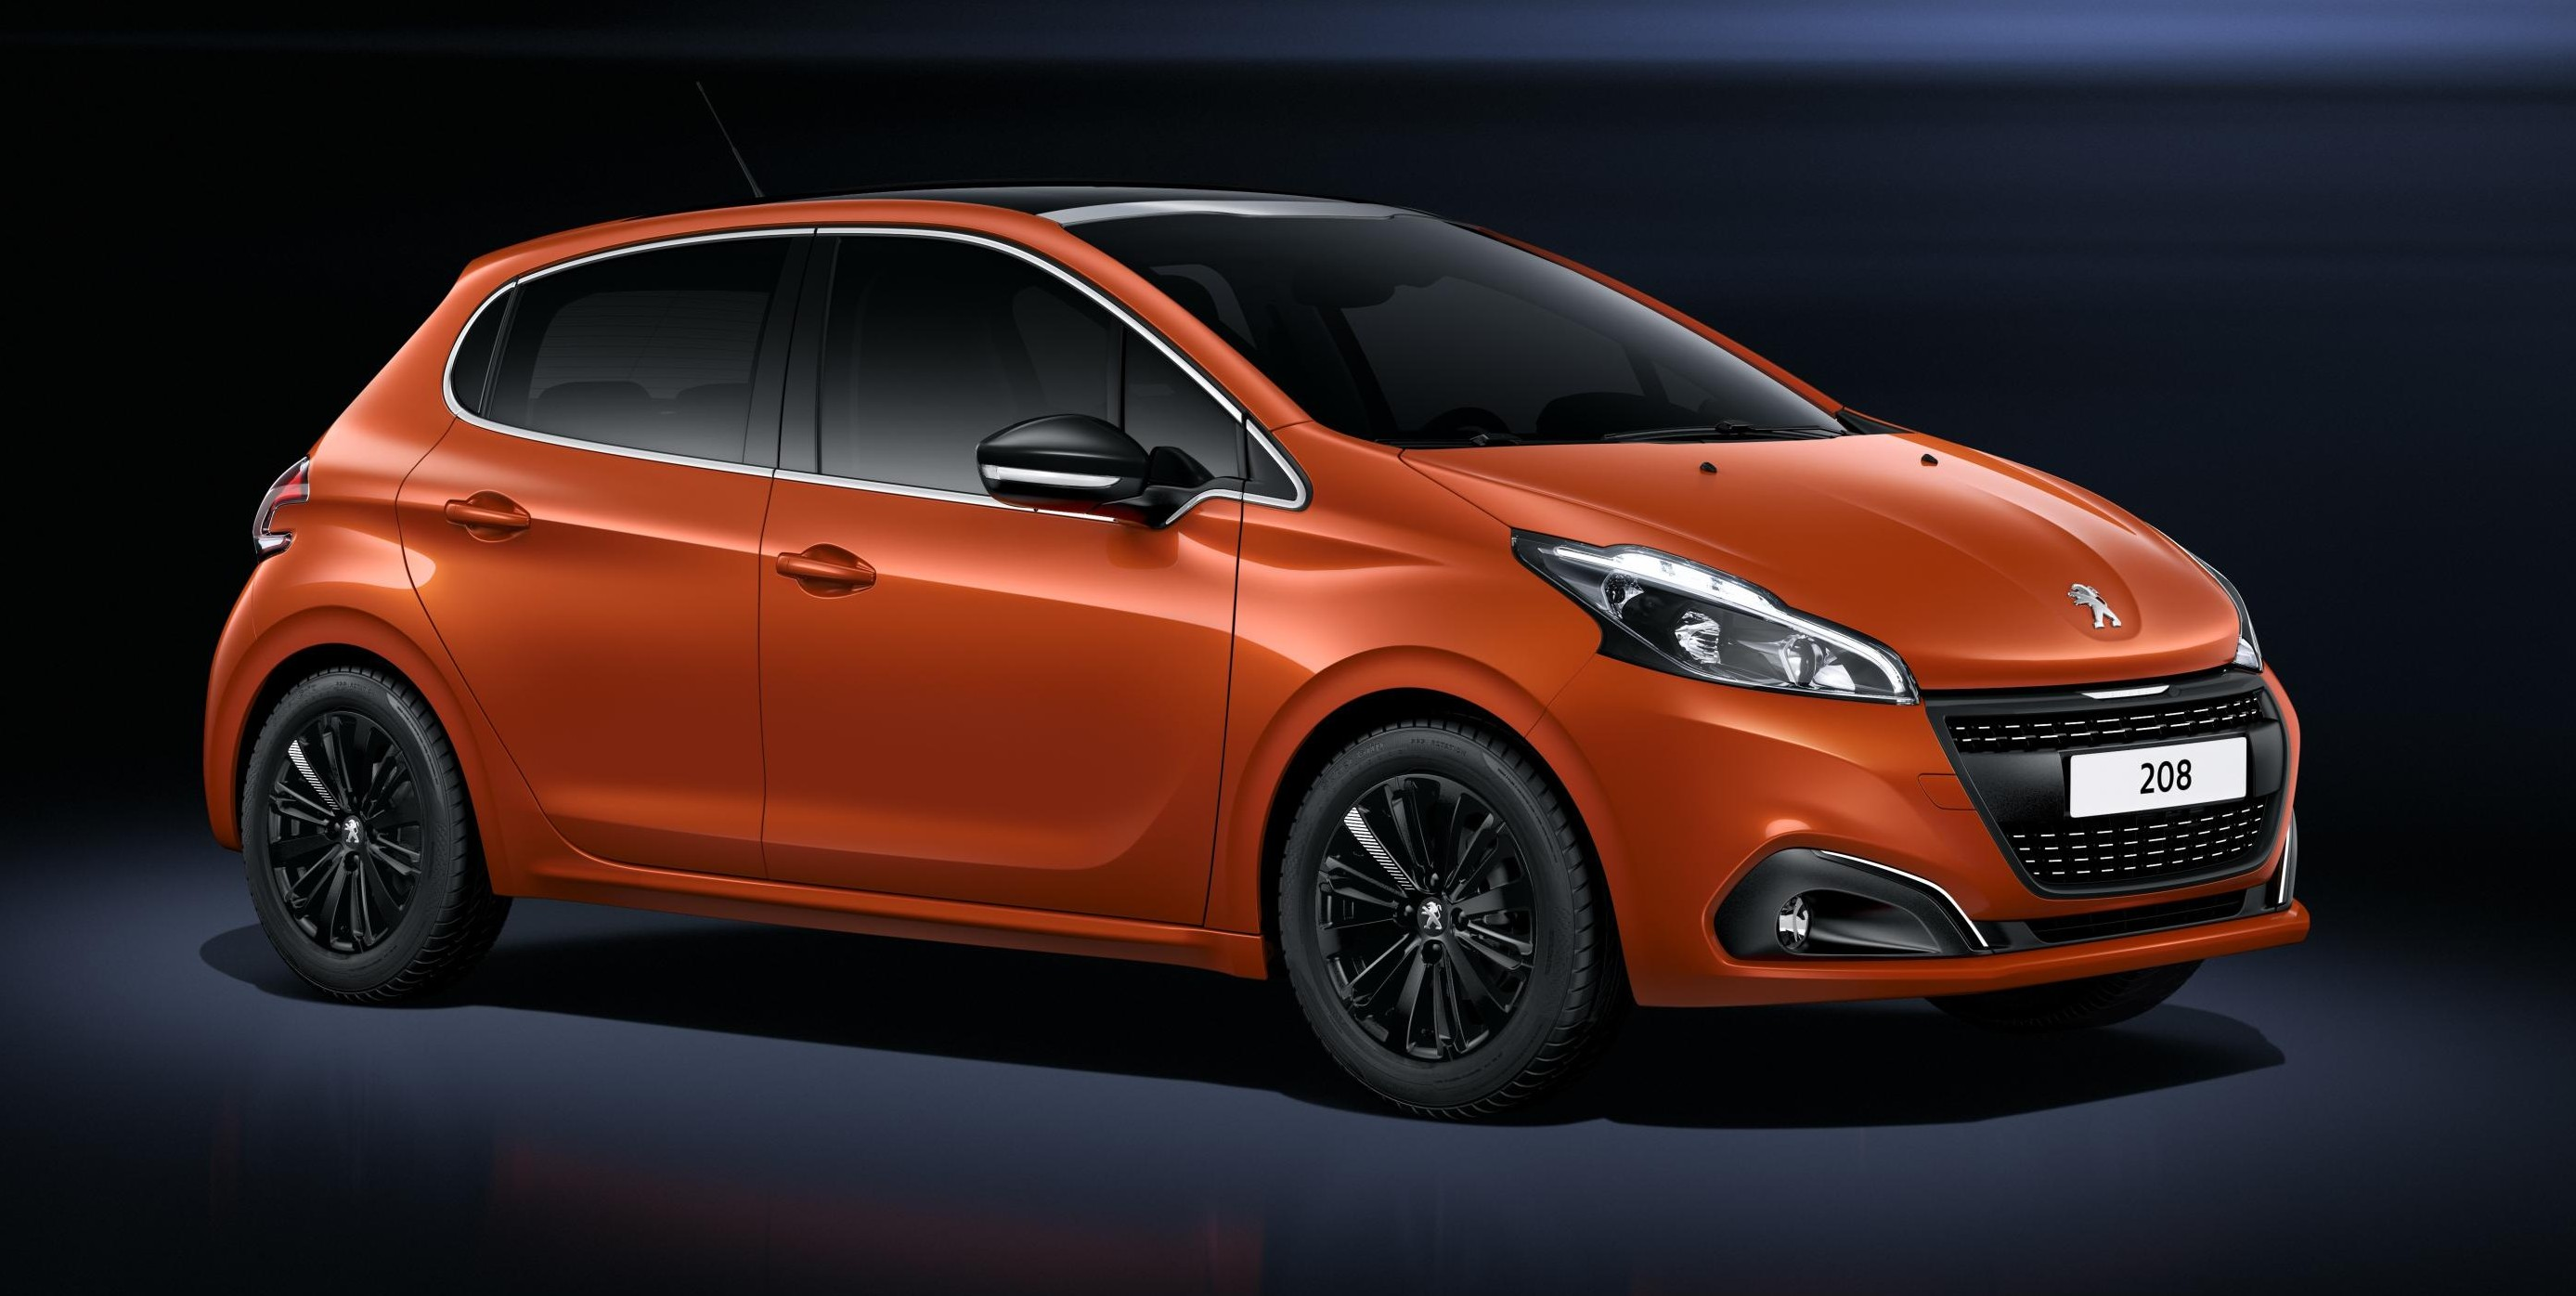 85TH GENEVA MOTOR SHOW – PEUGEOT SHOWCASES NEW 208 AND TECHNOLOGICAL EXCELLENCE